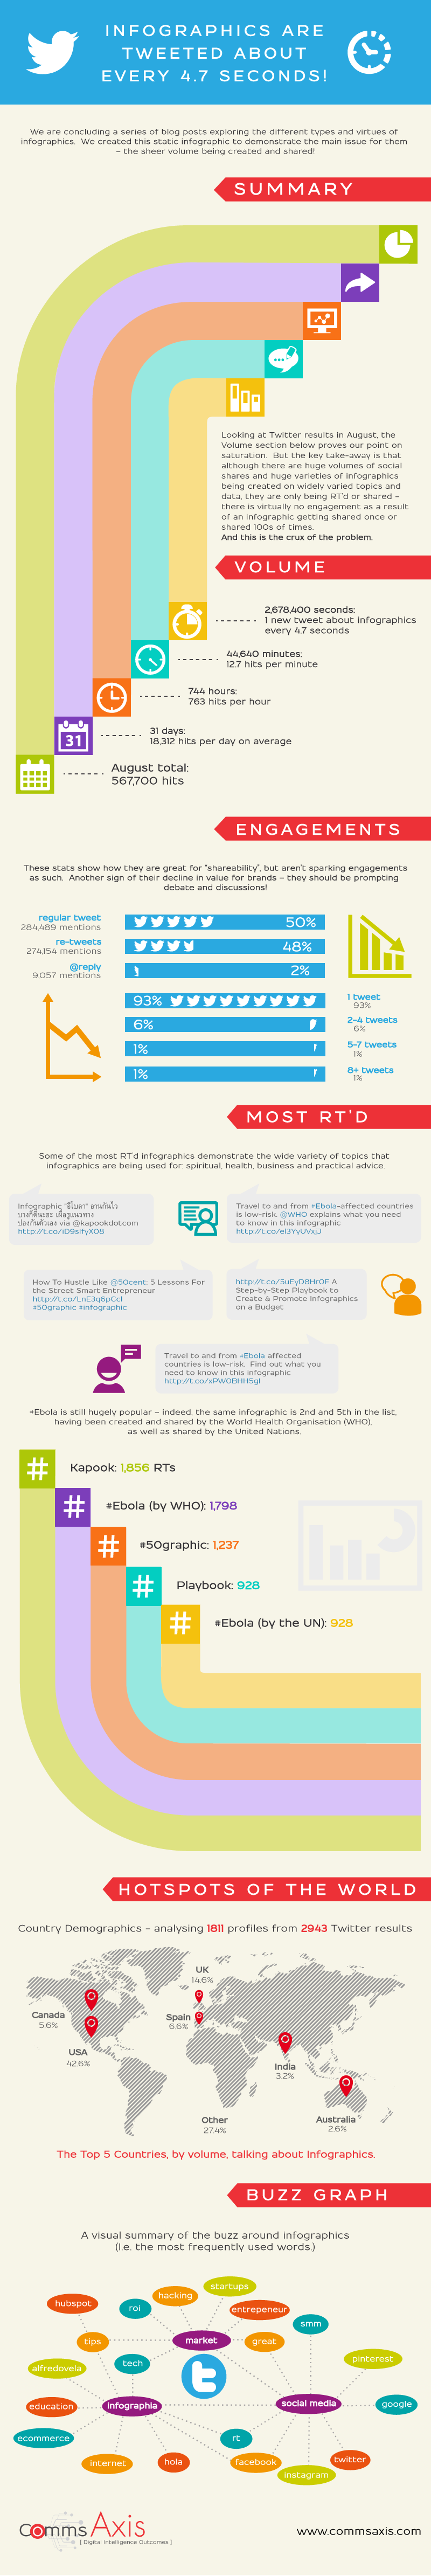 comms-axis-infographic-twitter-retweet